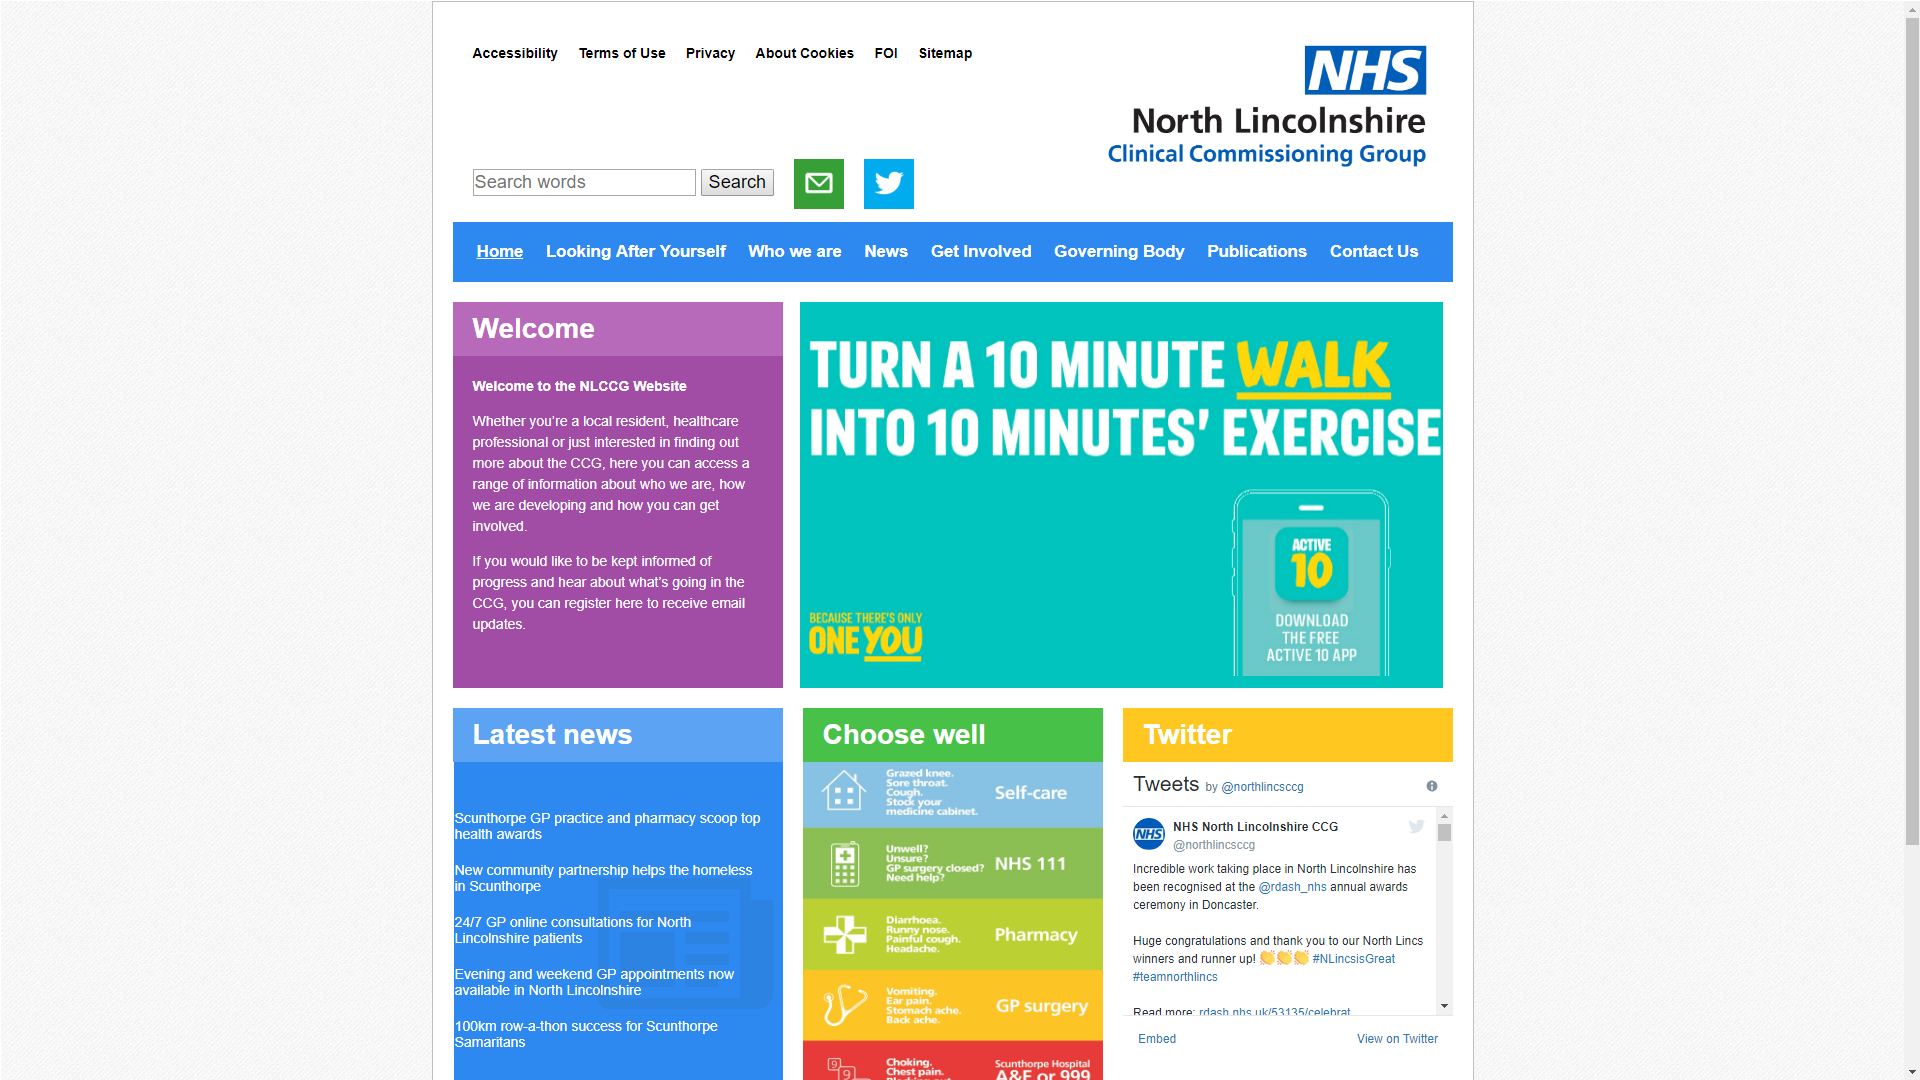 North Lincolnshire CCG